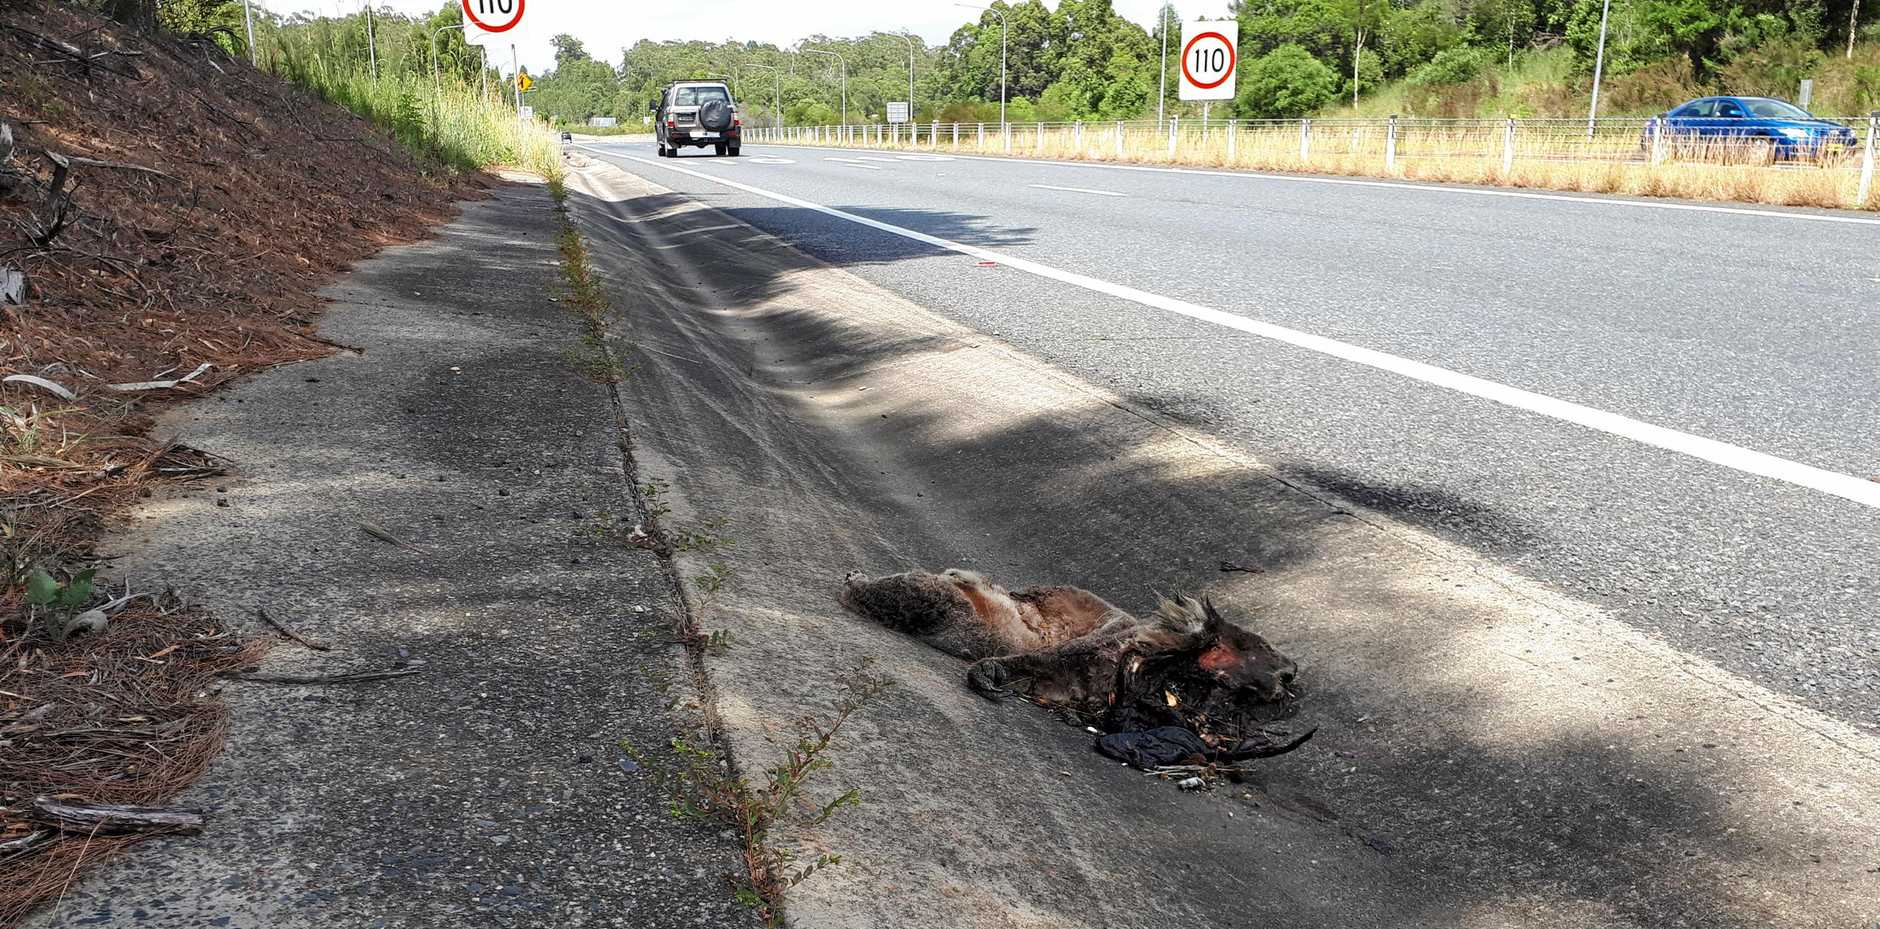 The koala was hit by a car and left for dead on the highway near the Lyons Road intersection.